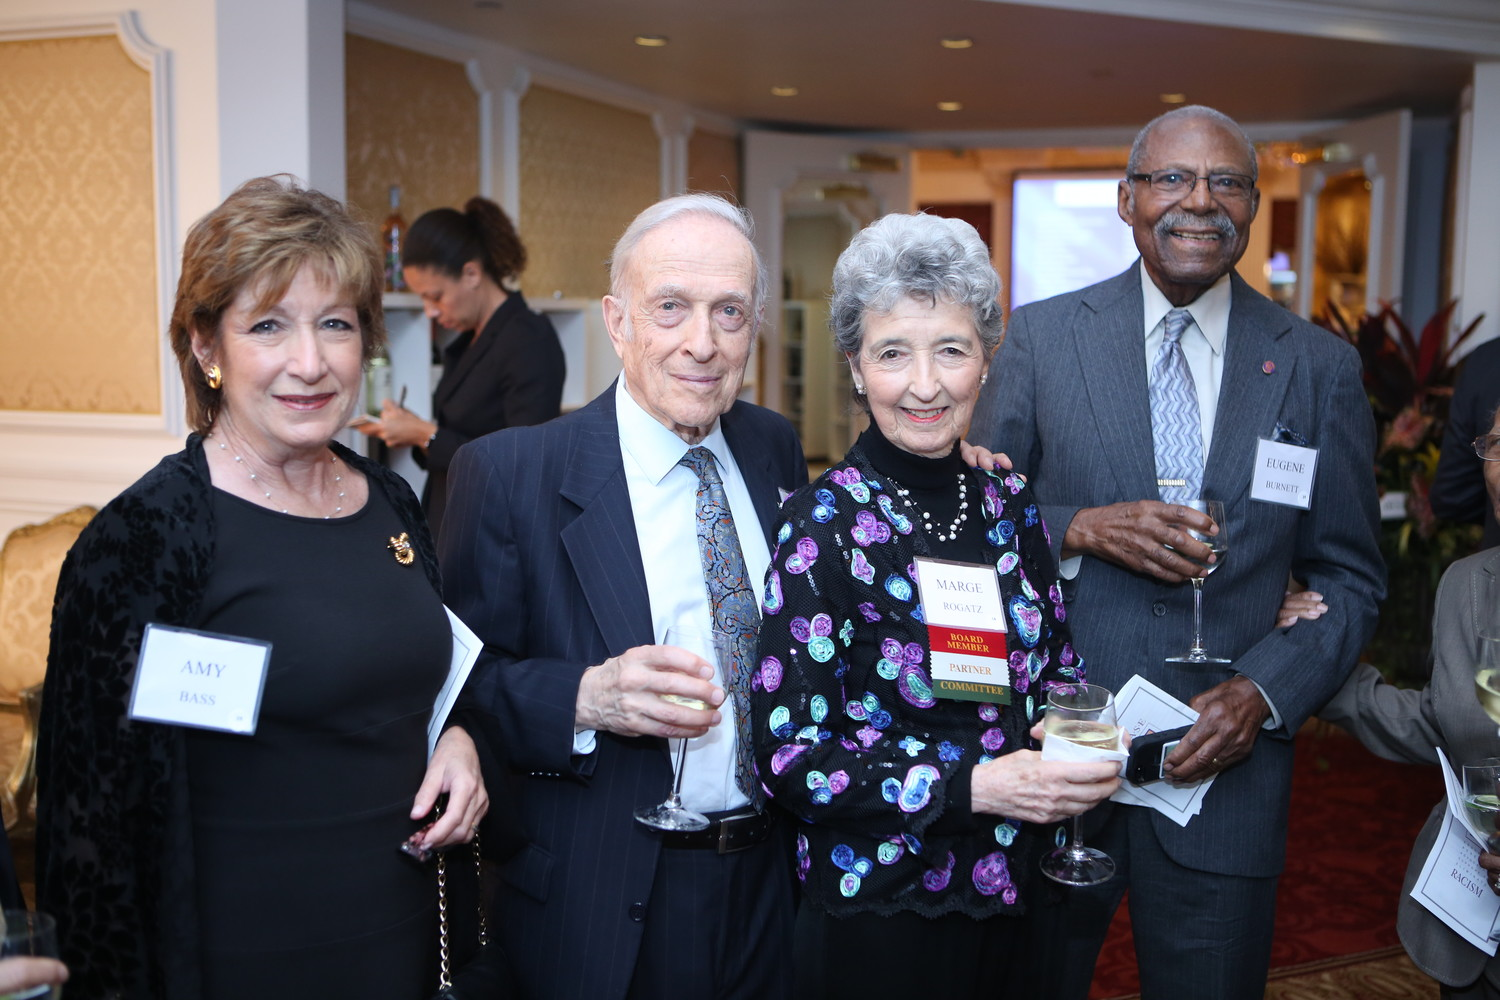 Marge Rogatz with her husband, Peter, center, at ERASE Racism's annual banquet last year.